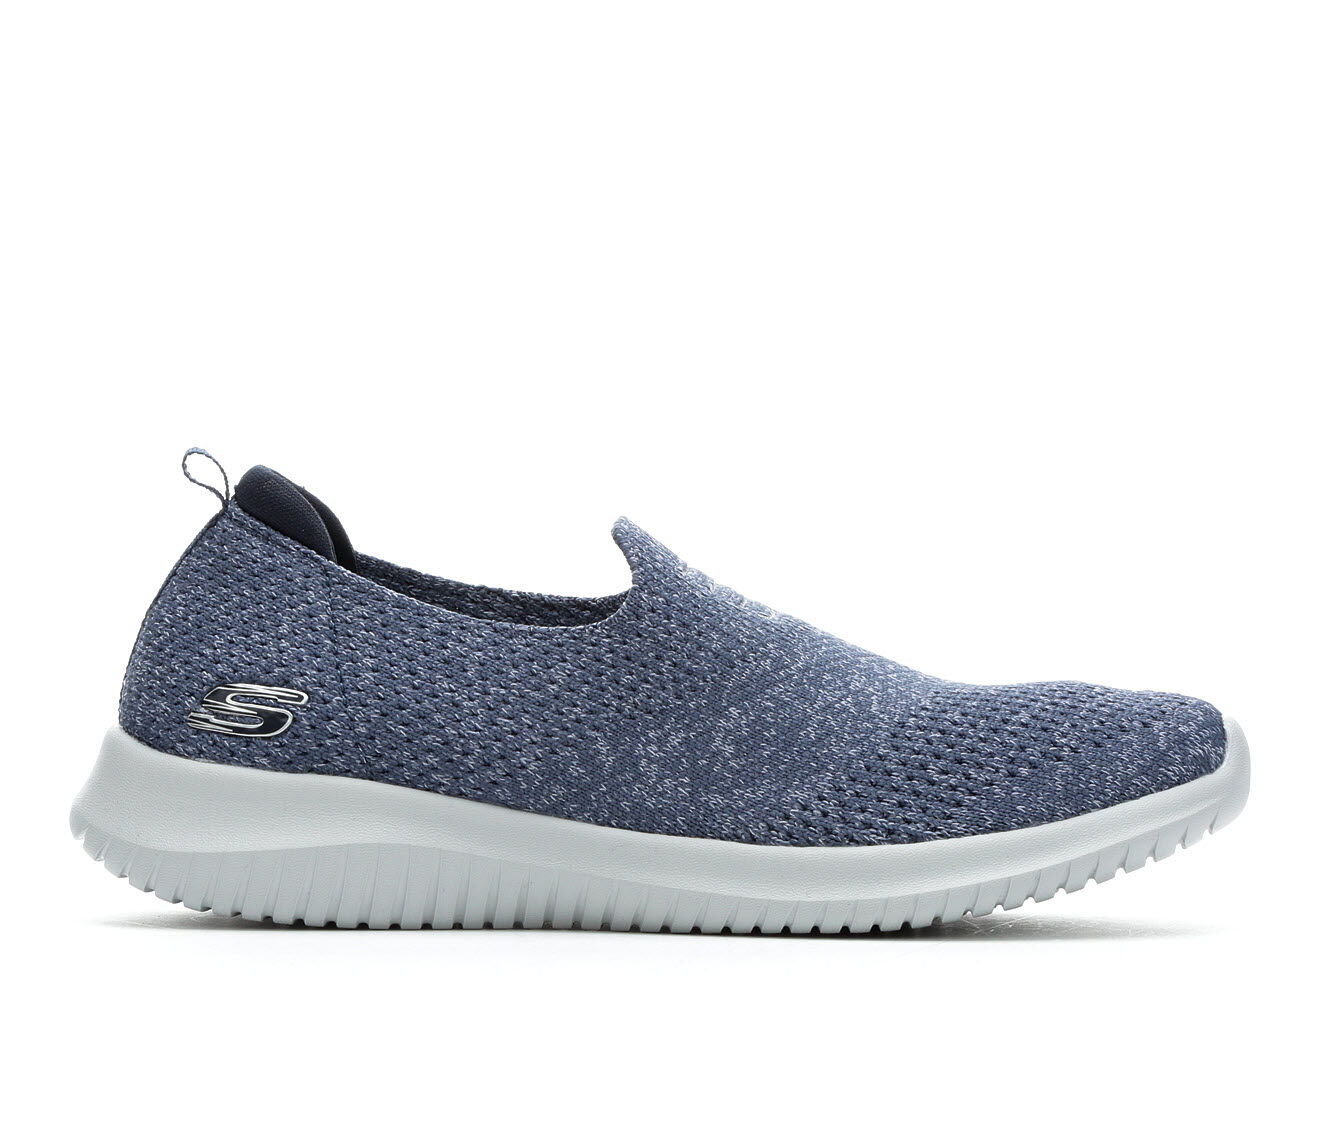 Women's Skechers Harmonious 13106 Sneakers Navy/White